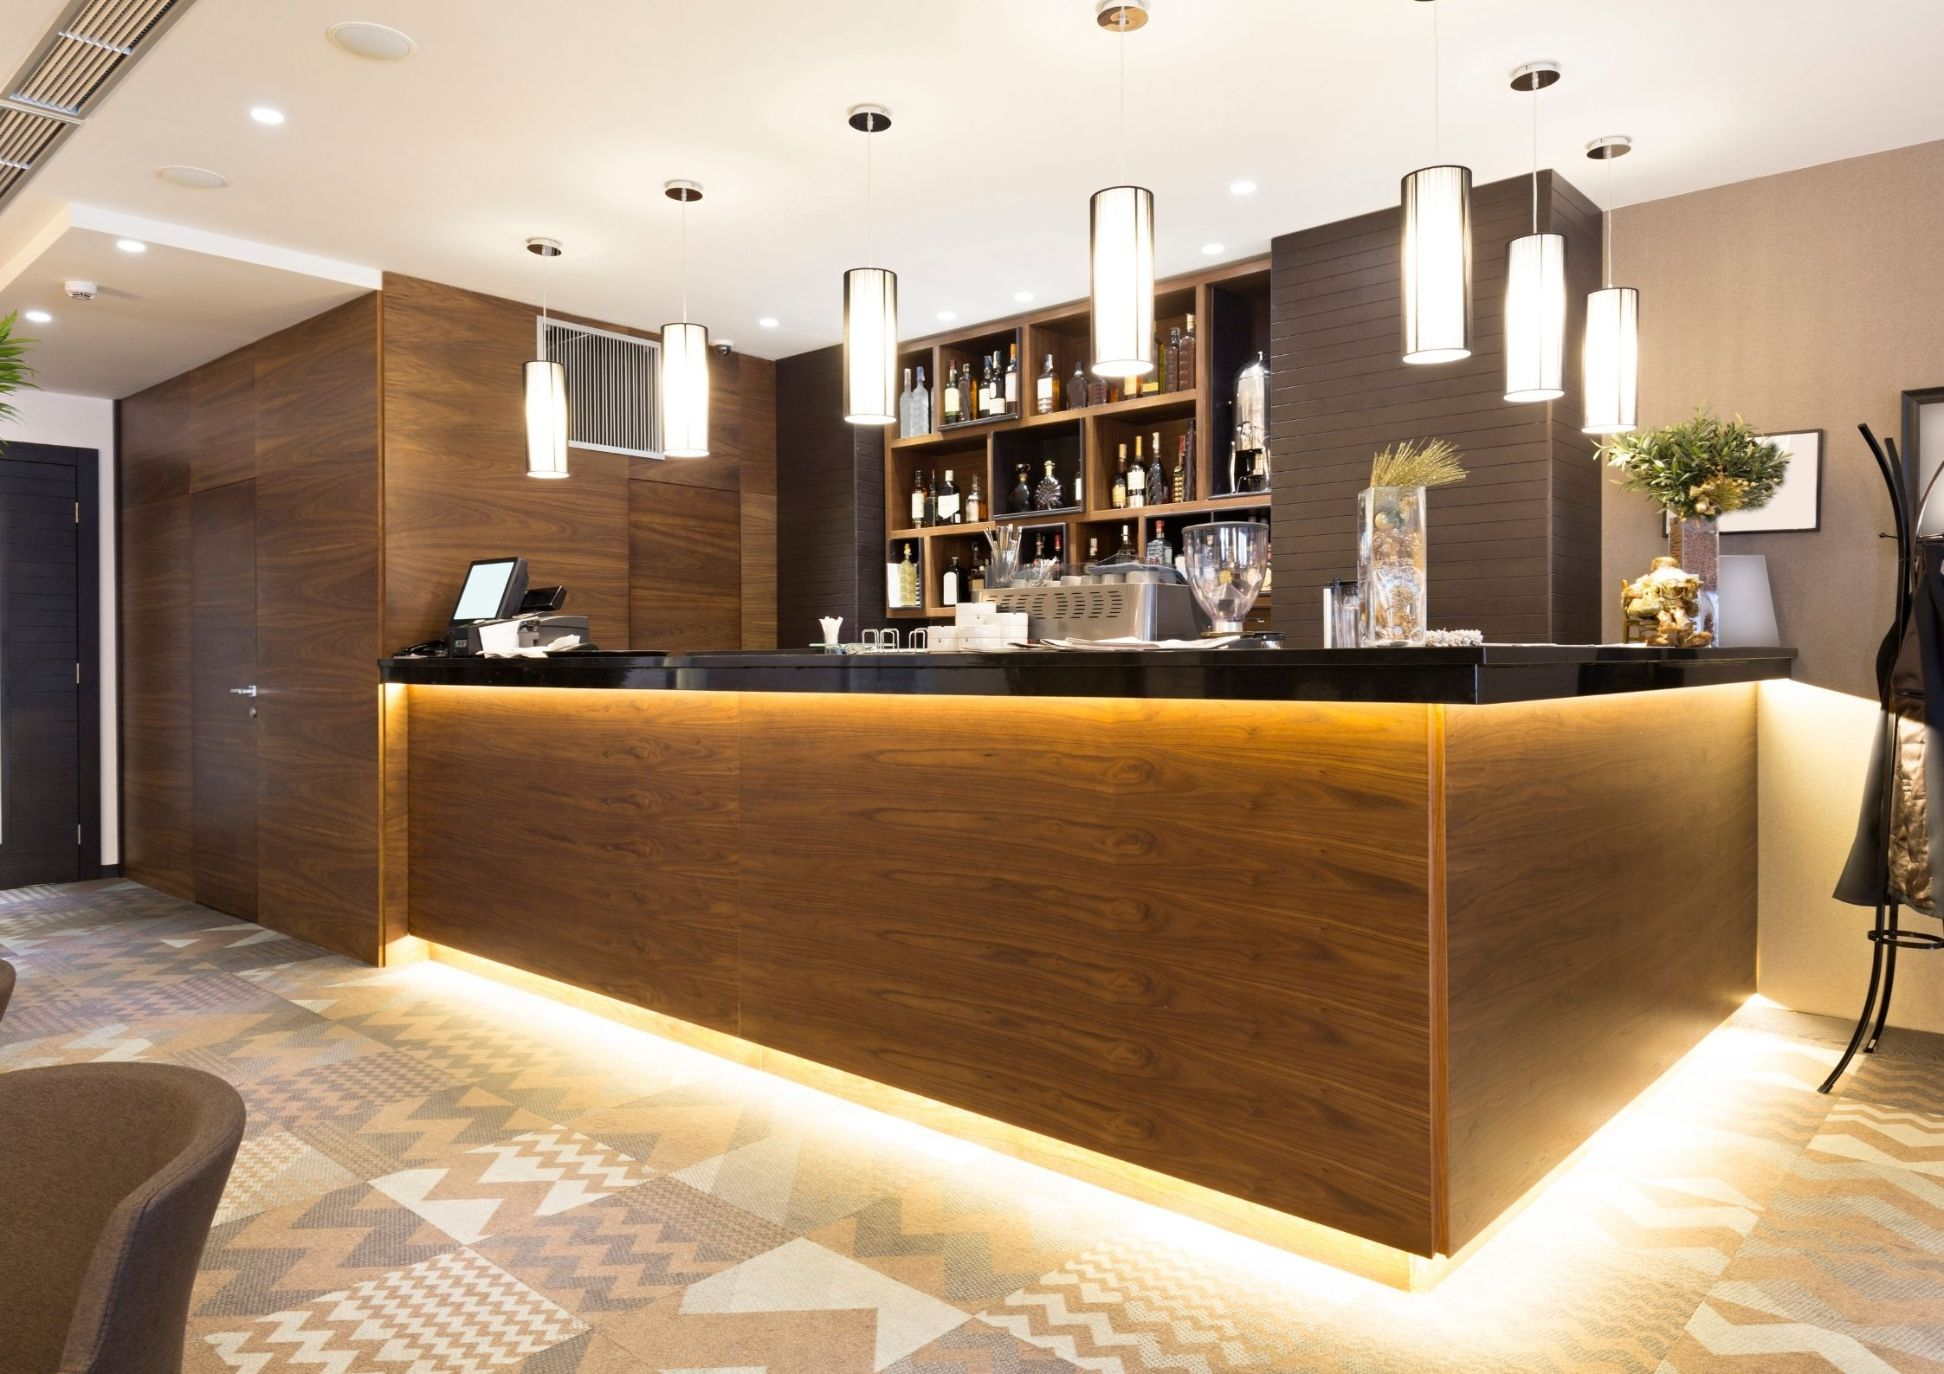 bar fitout project in Australia